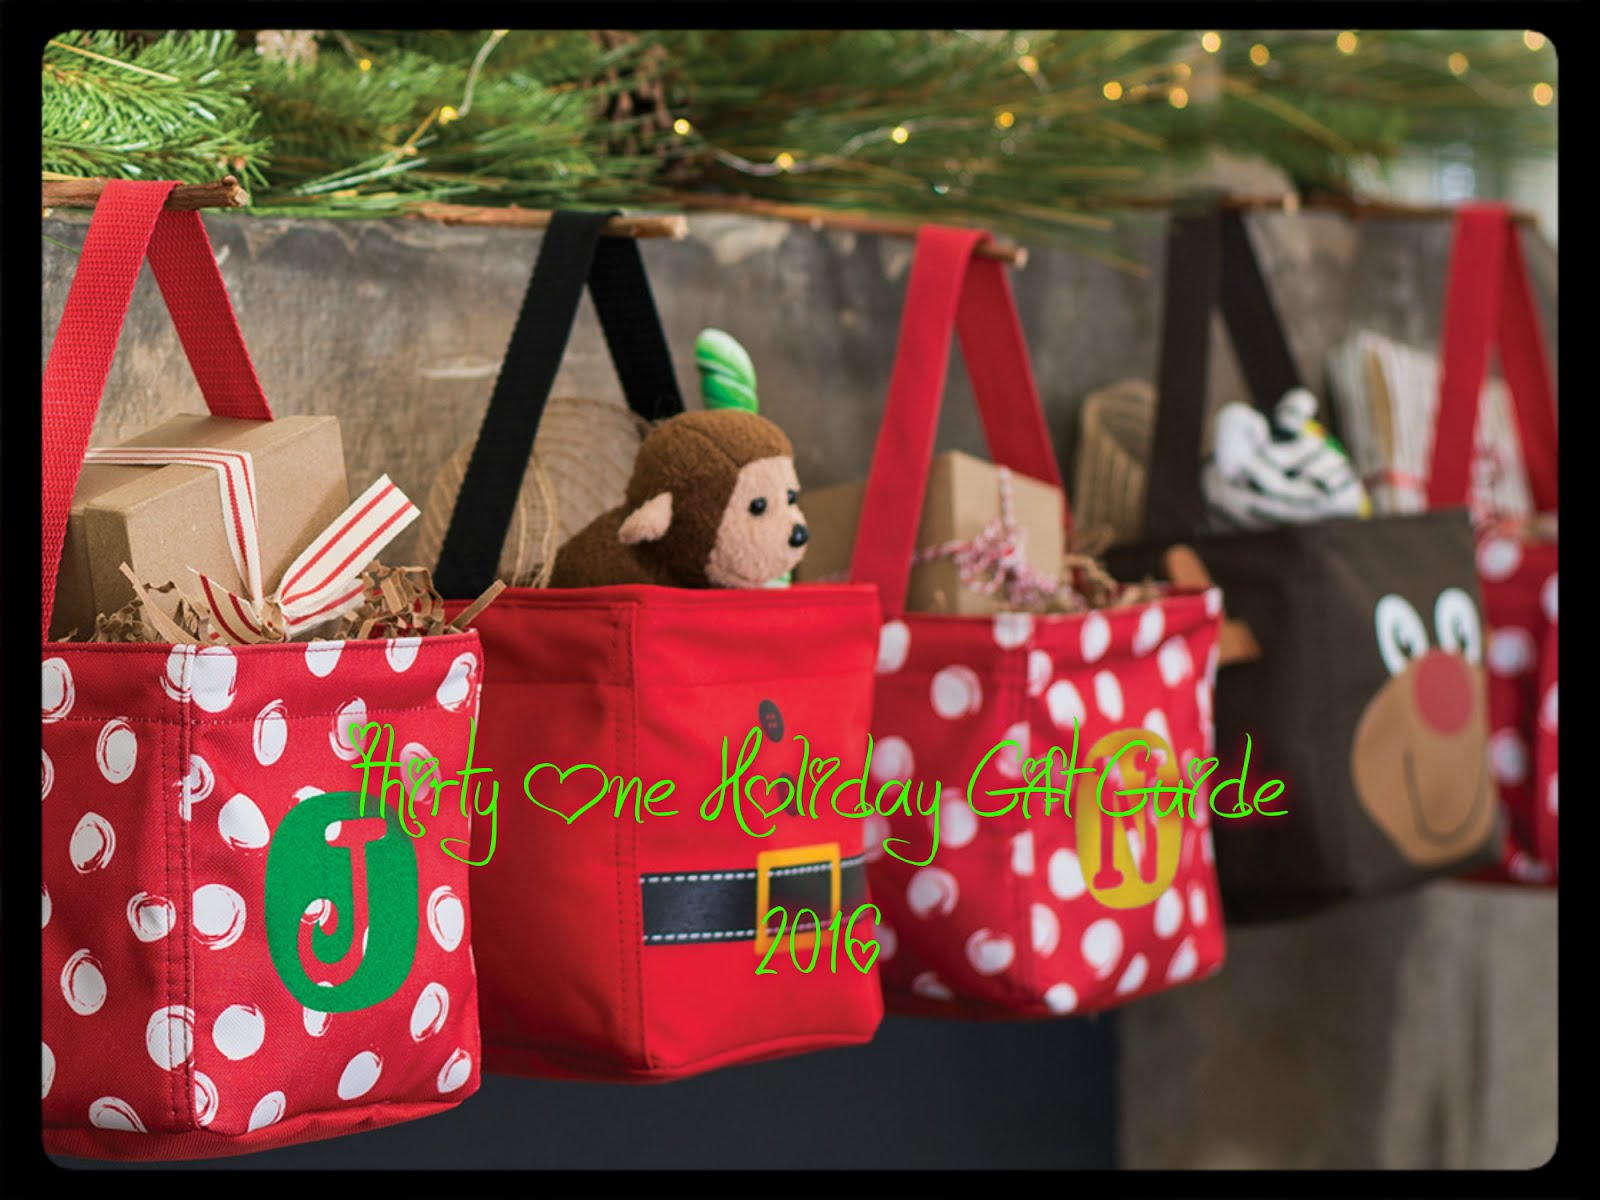 Thirty- One Gifts 2016 Holiday Gift Guide